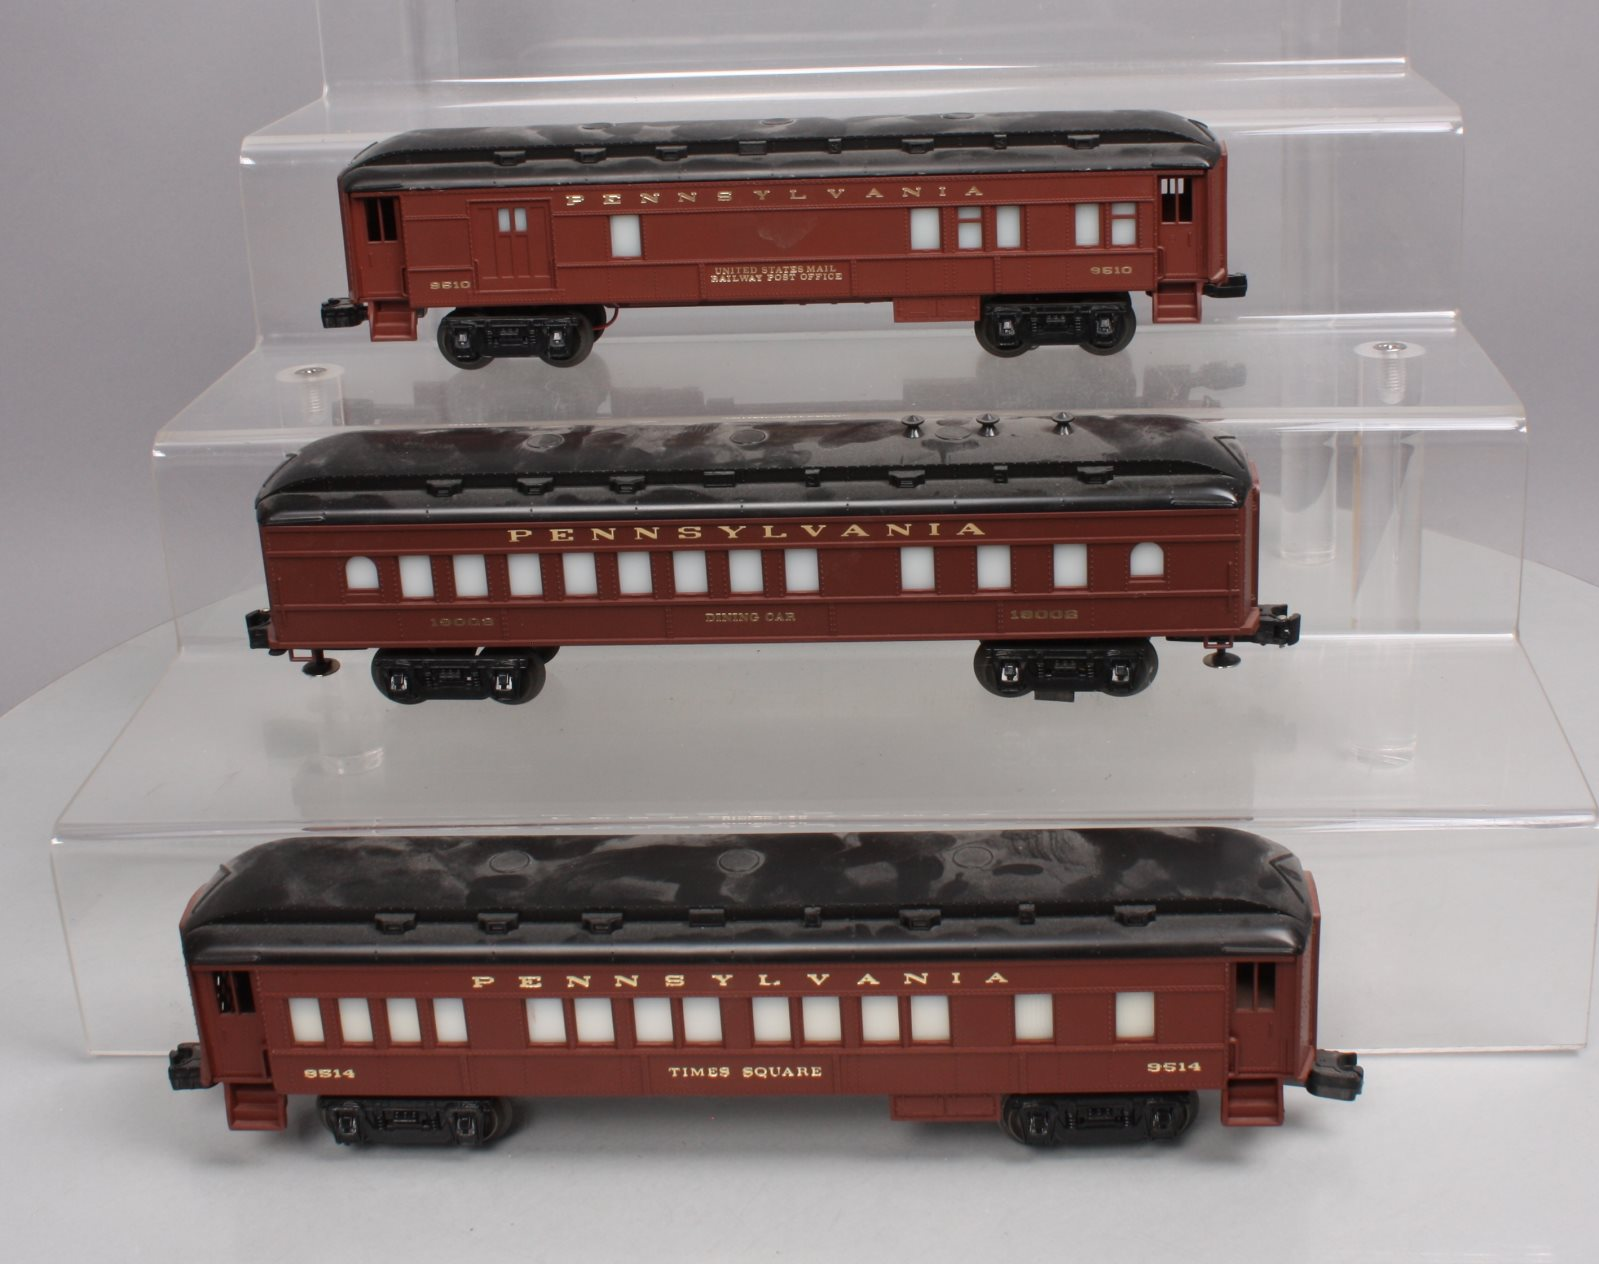 Buy Lionel O Gauge Pennsylvania Passenger Cars 6 9510 6 9514 & 6